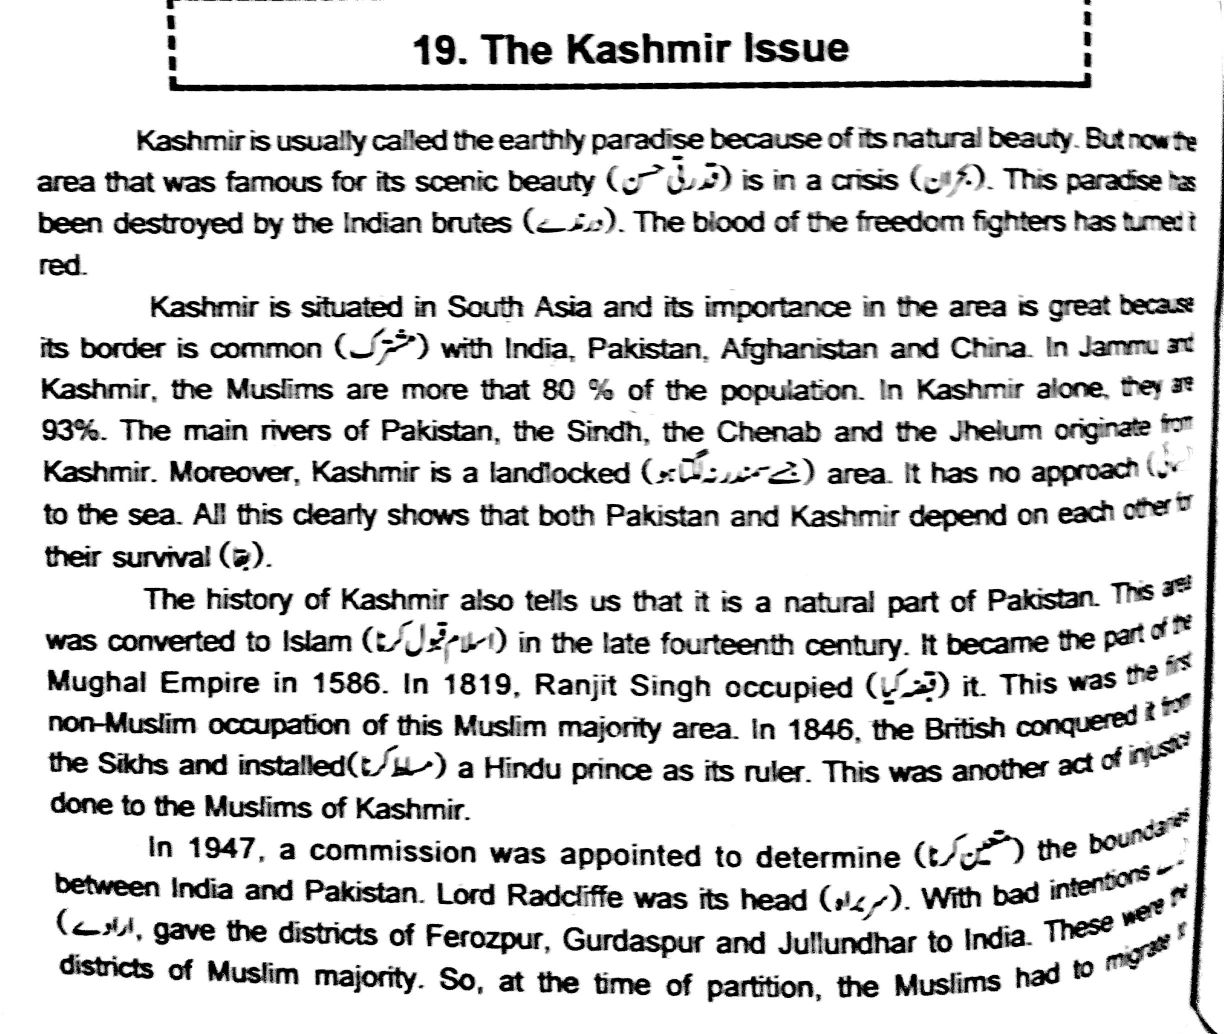 ethical issues essay kashmir issue essay pak education info the  kashmir issue essay pak education info the kashmir problem essay the kashmir issue essay in english